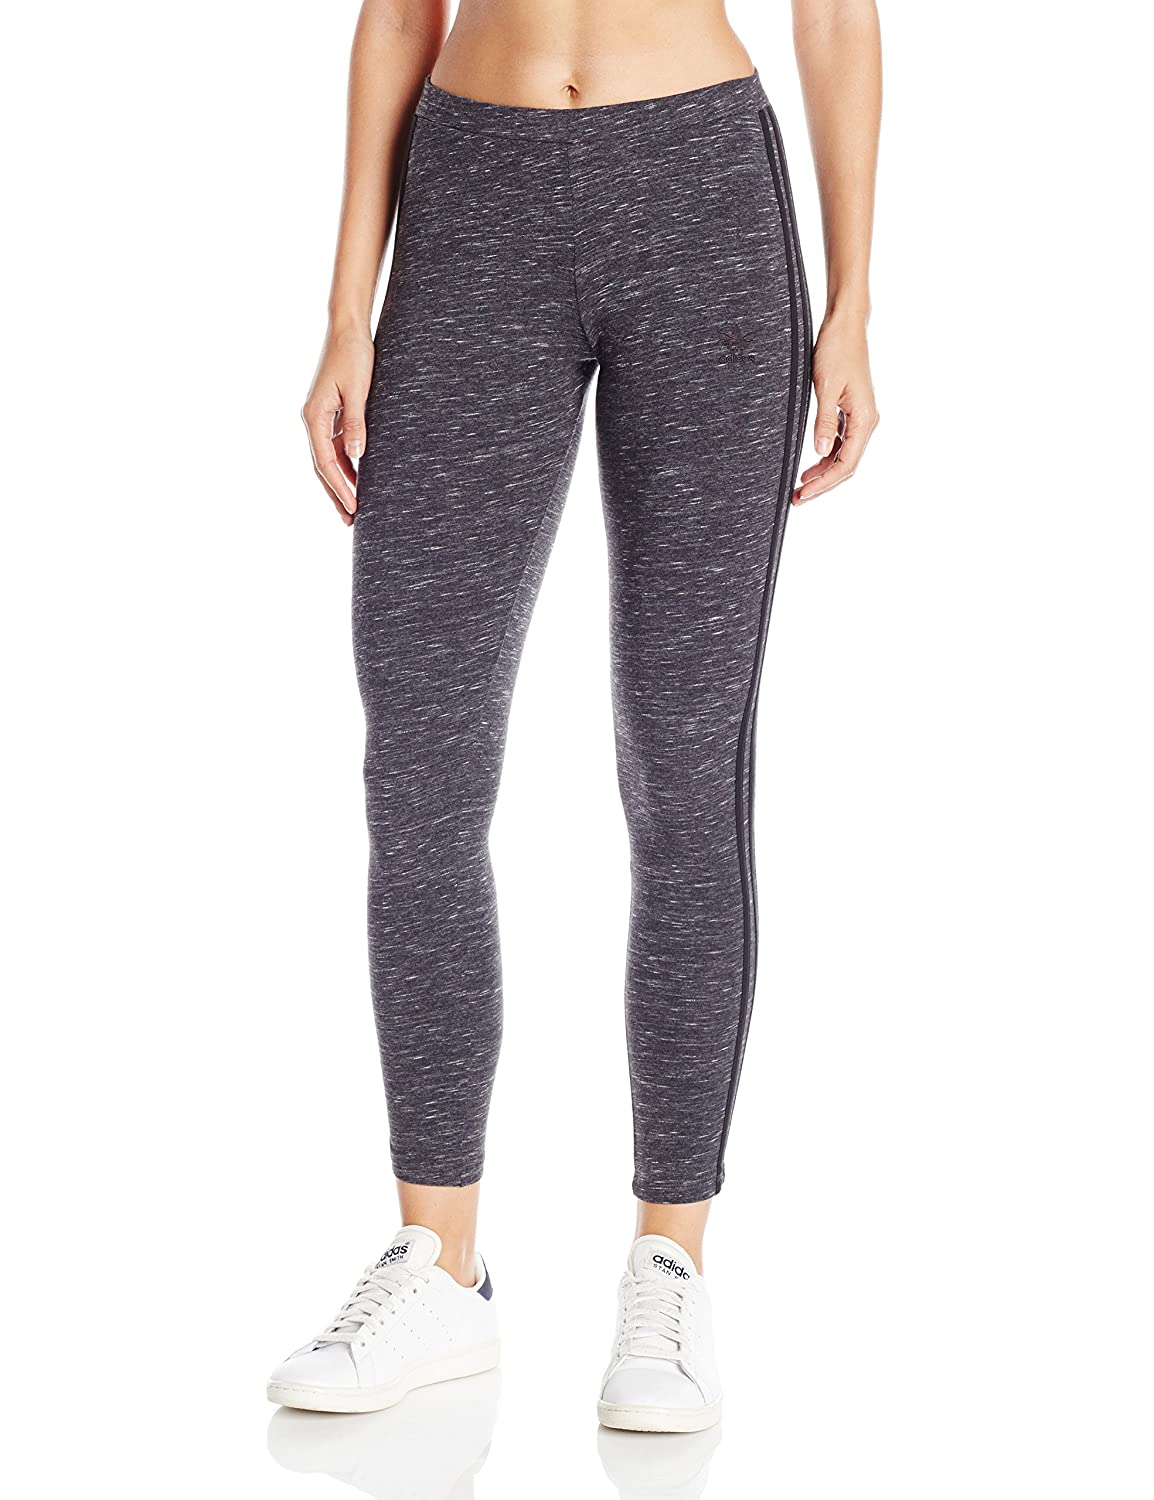 7. Adidas Original Women's Three Stripe Leggings